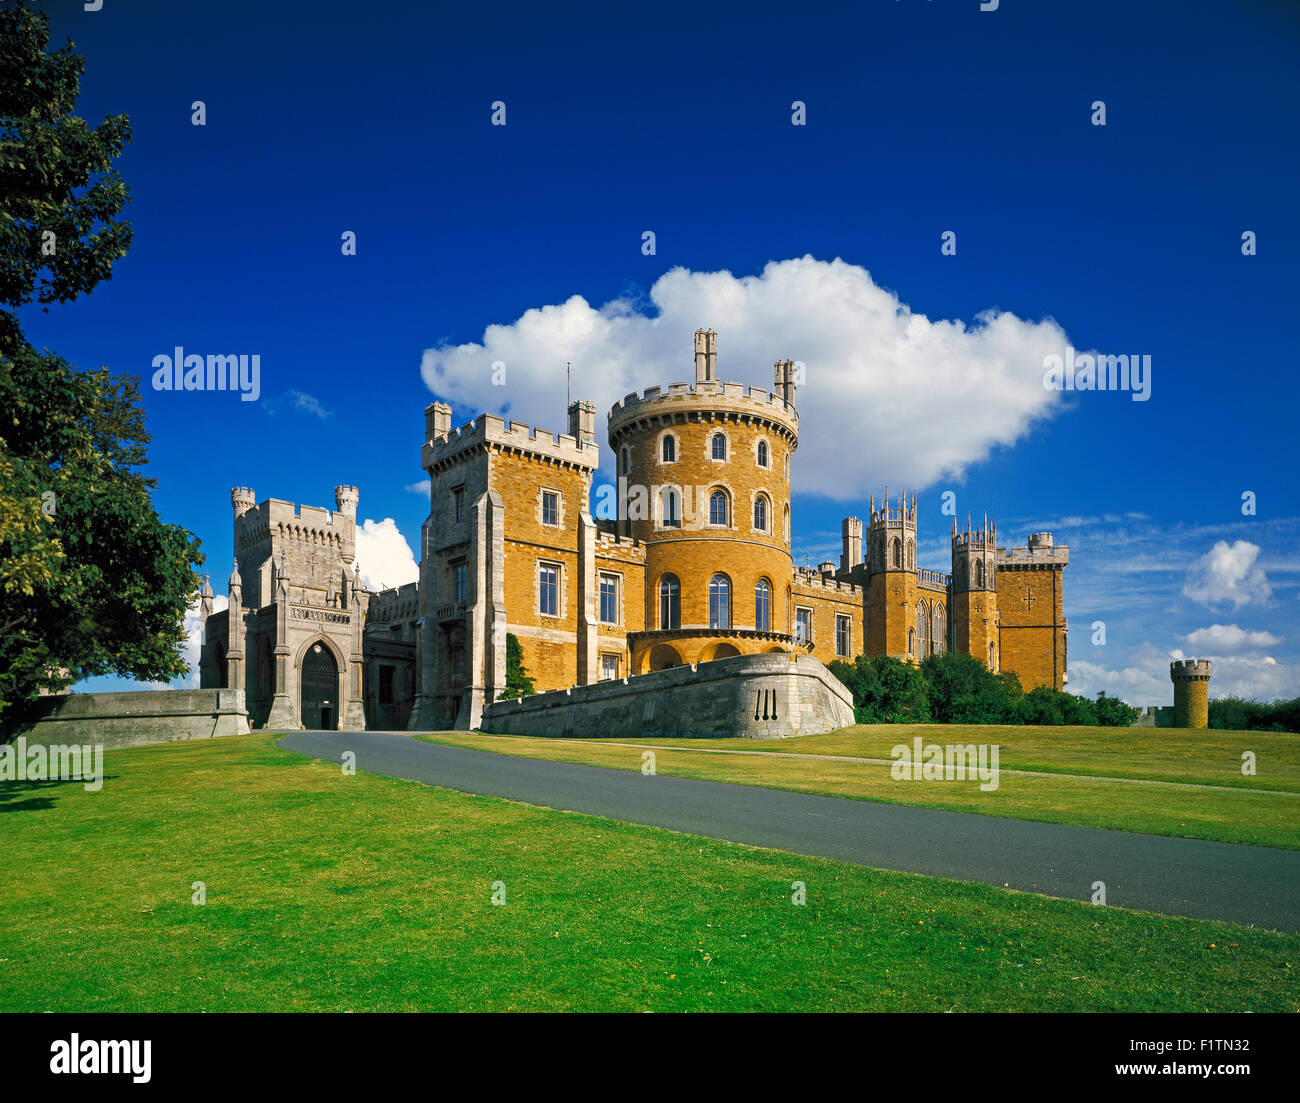 Belvoir Castle in the Vale of Belvoir,Melton Mowbray, Leicestershire England UK - Stock Image